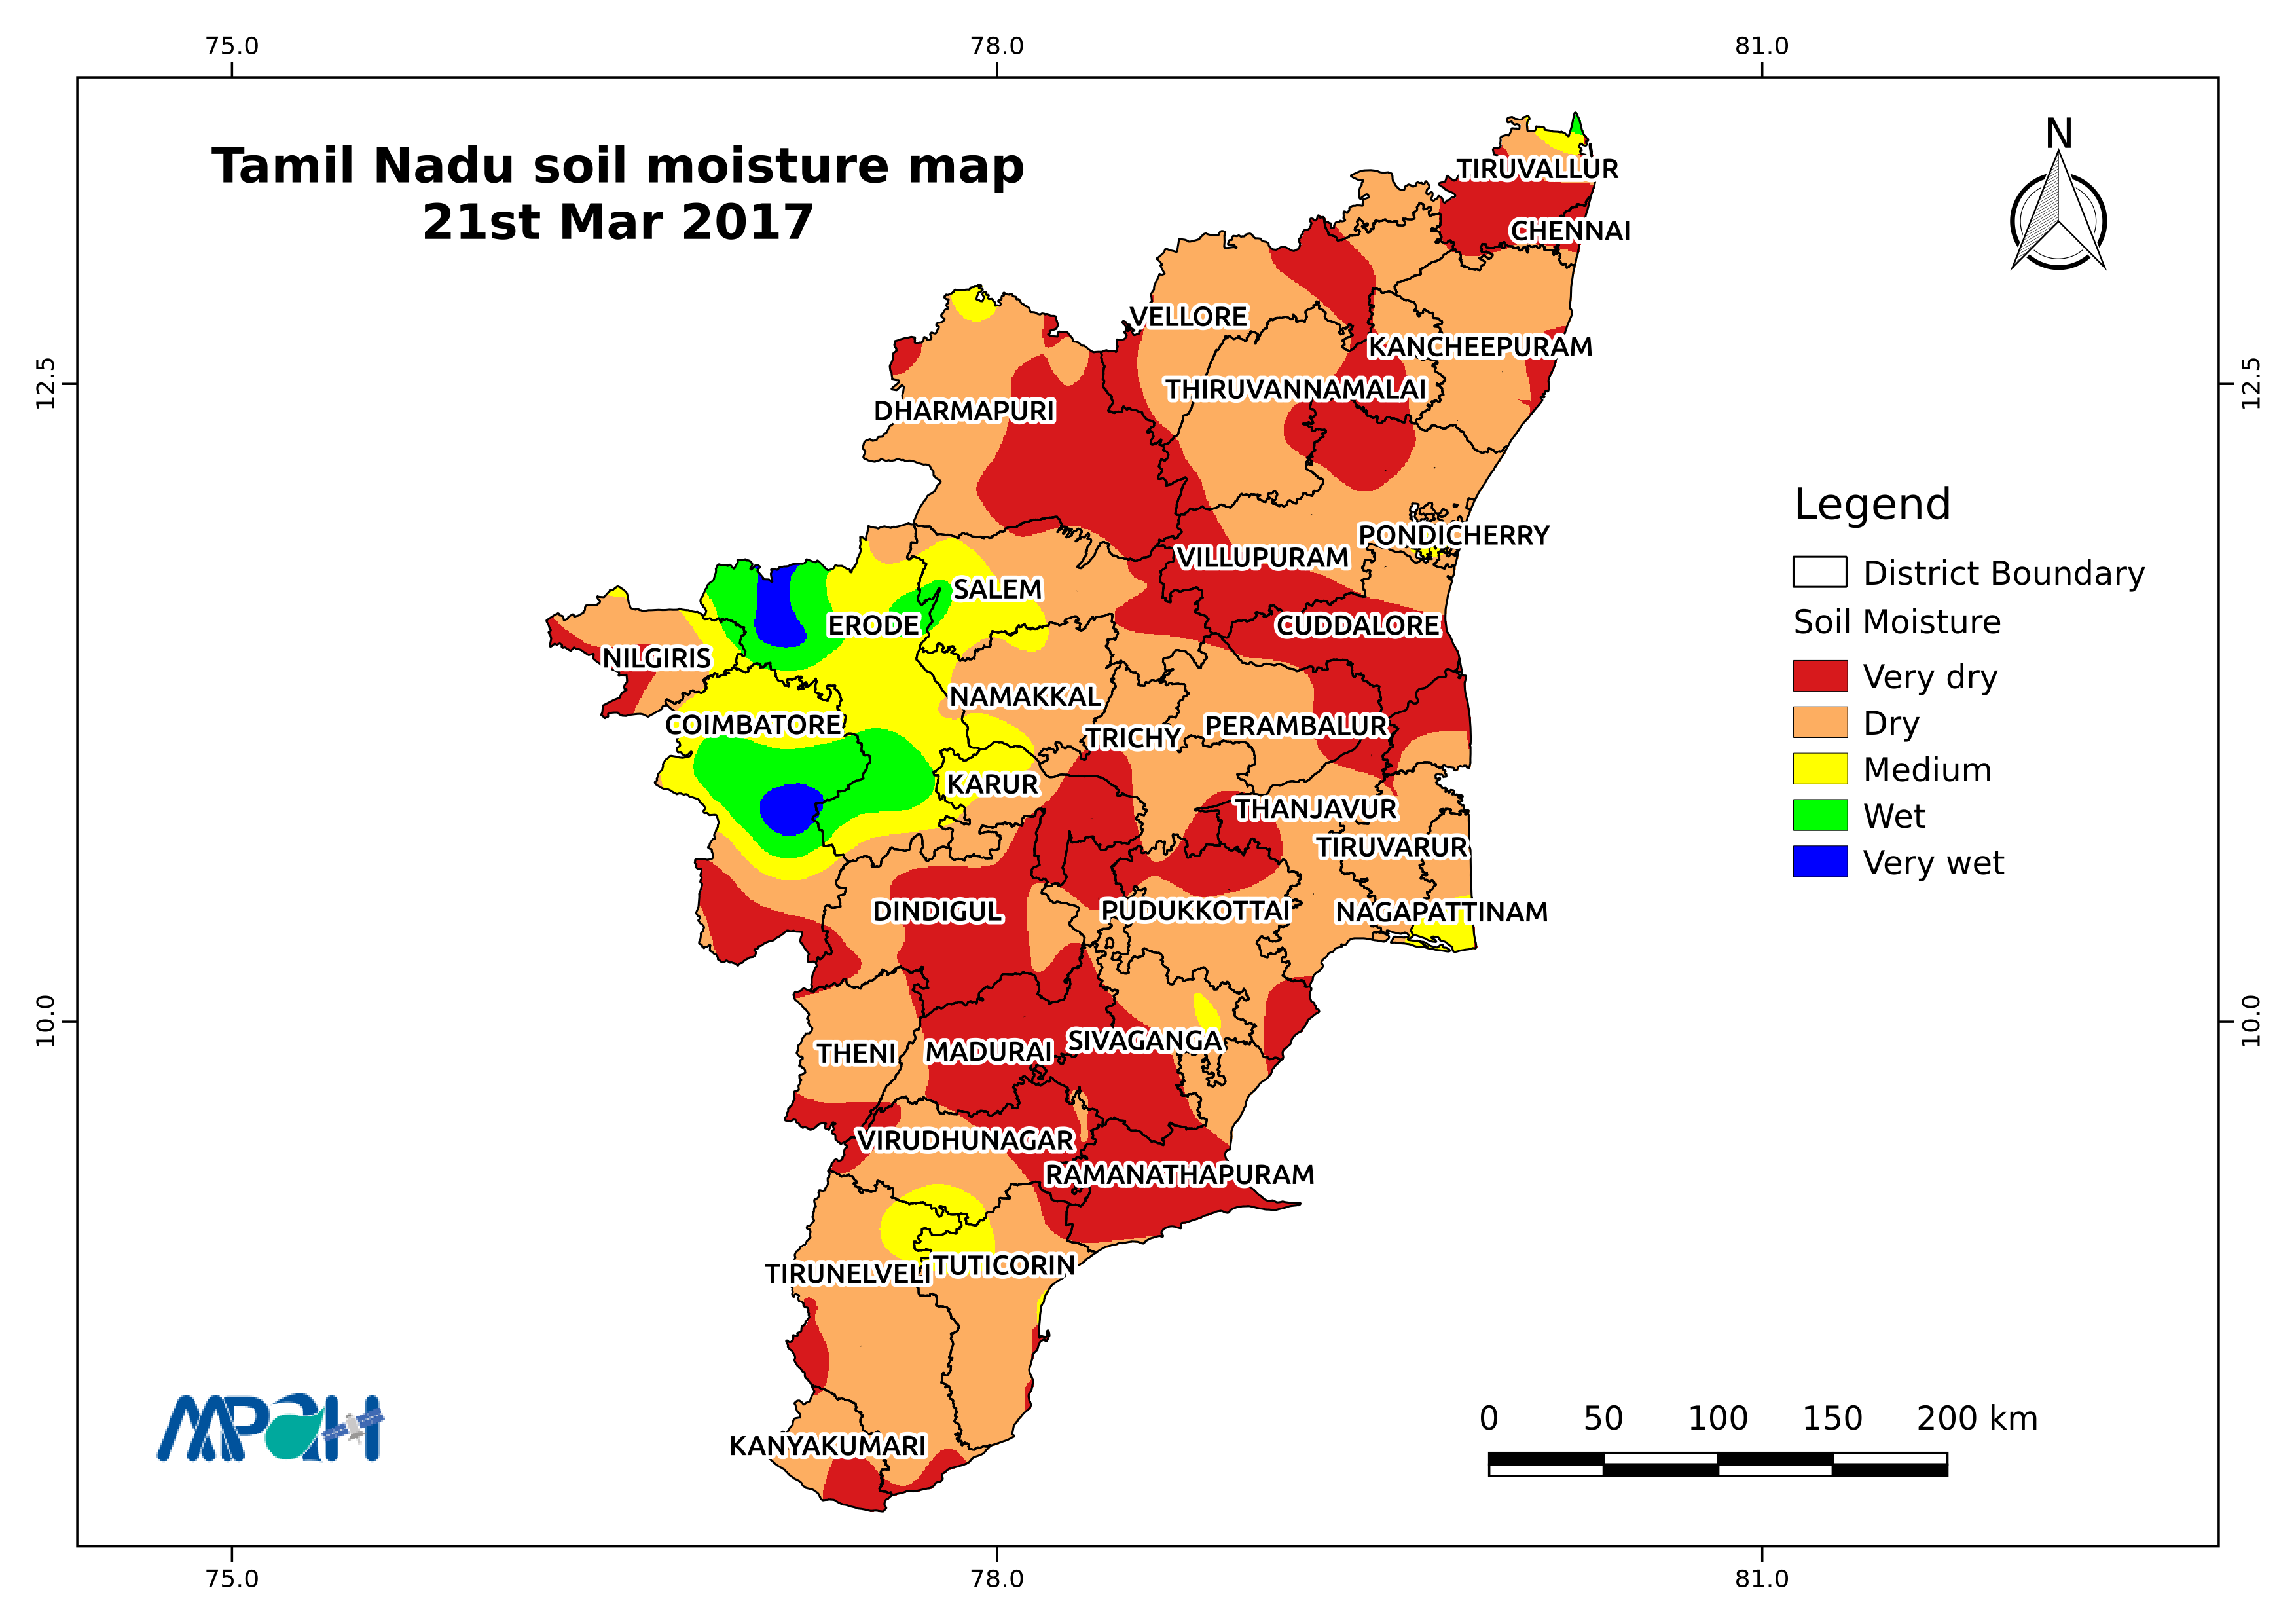 Soil moisture map for the state of tamil nadu aapah innovations soil moisture map for the state of tamil nadu gumiabroncs Image collections